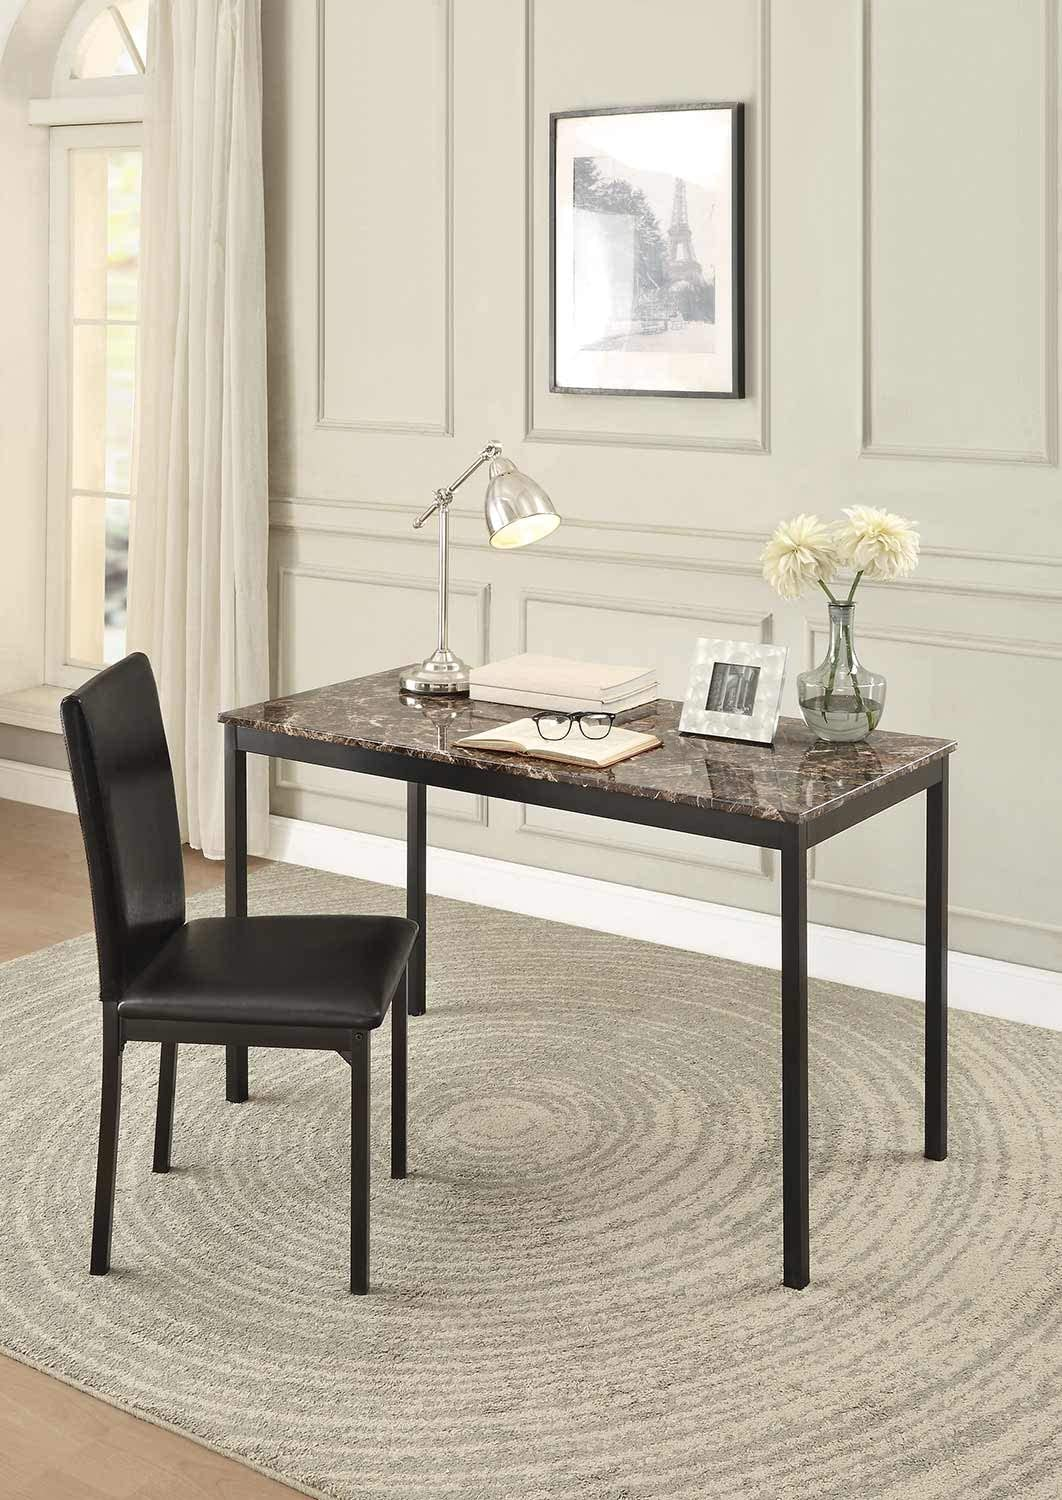 Benzara BM179946 Faux Tulsa Mall Marble Writing Uphol Leatherette with Spring new work one after another Desk